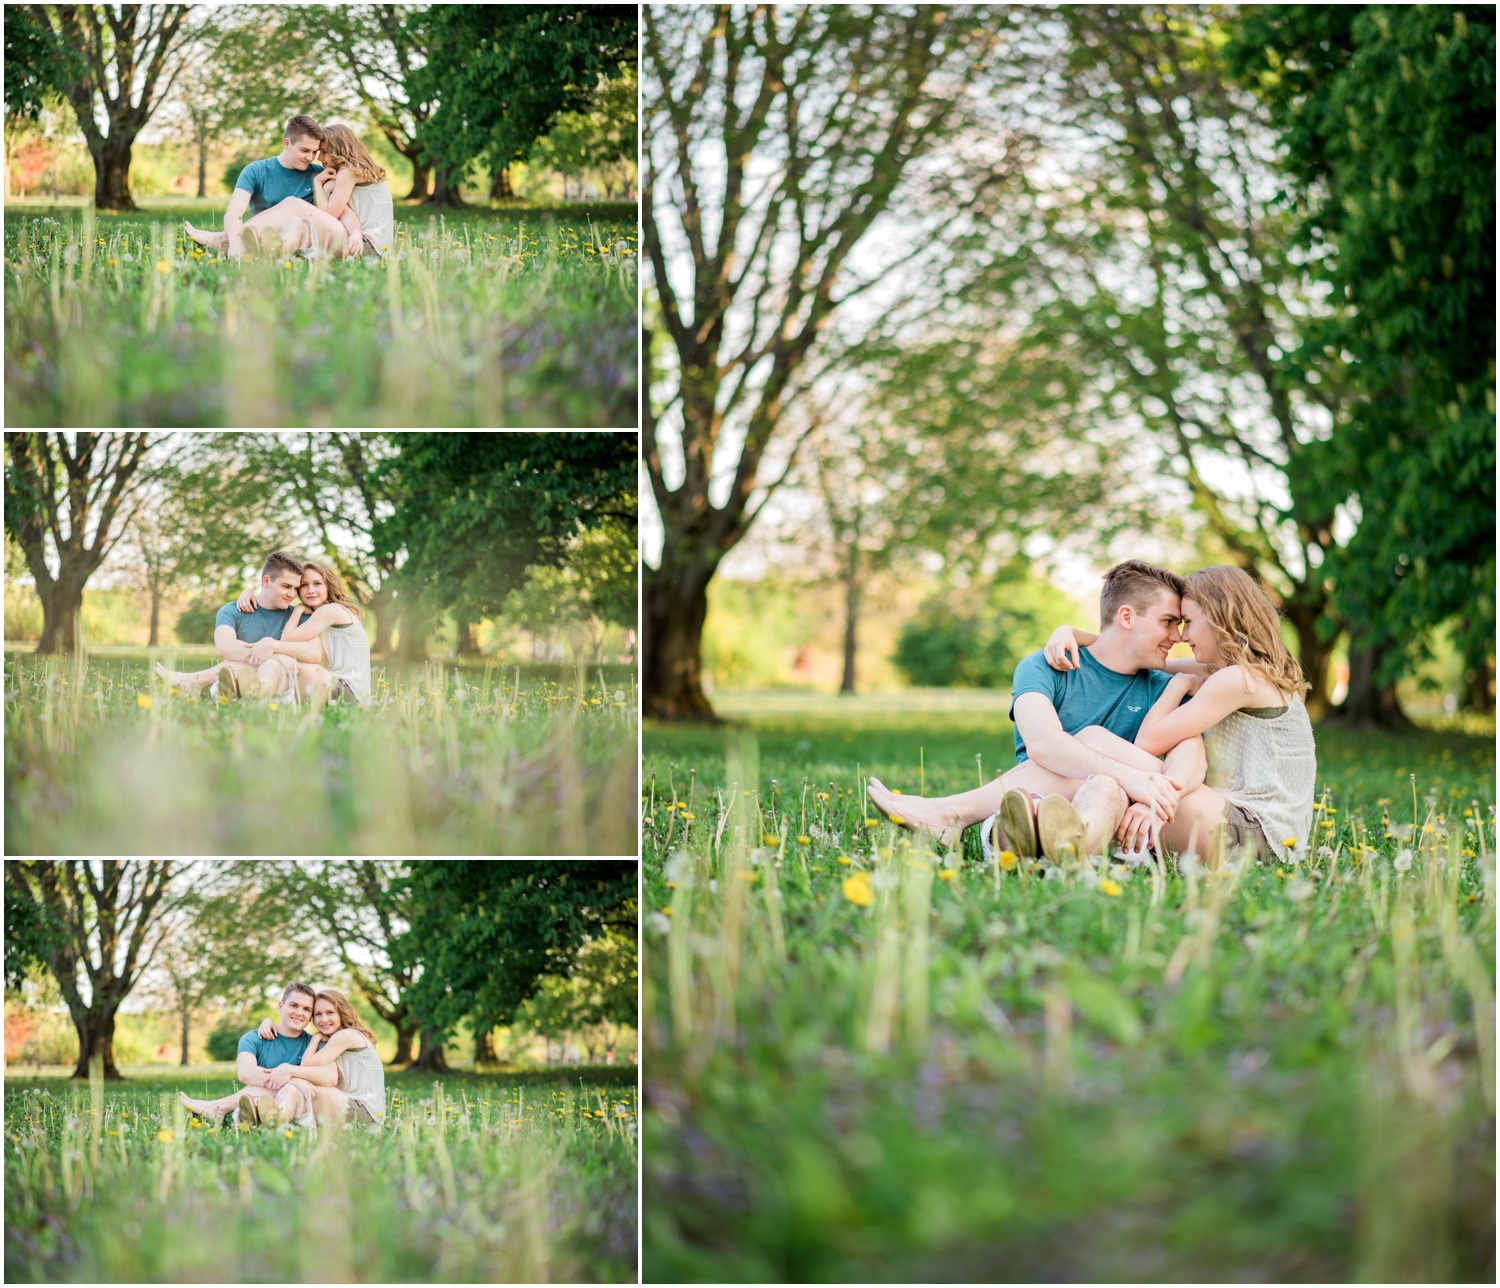 UW_Madison_Arboretum_Madison_WI_Engagement_Photos_Sydney_and_Tim_0017.jpg